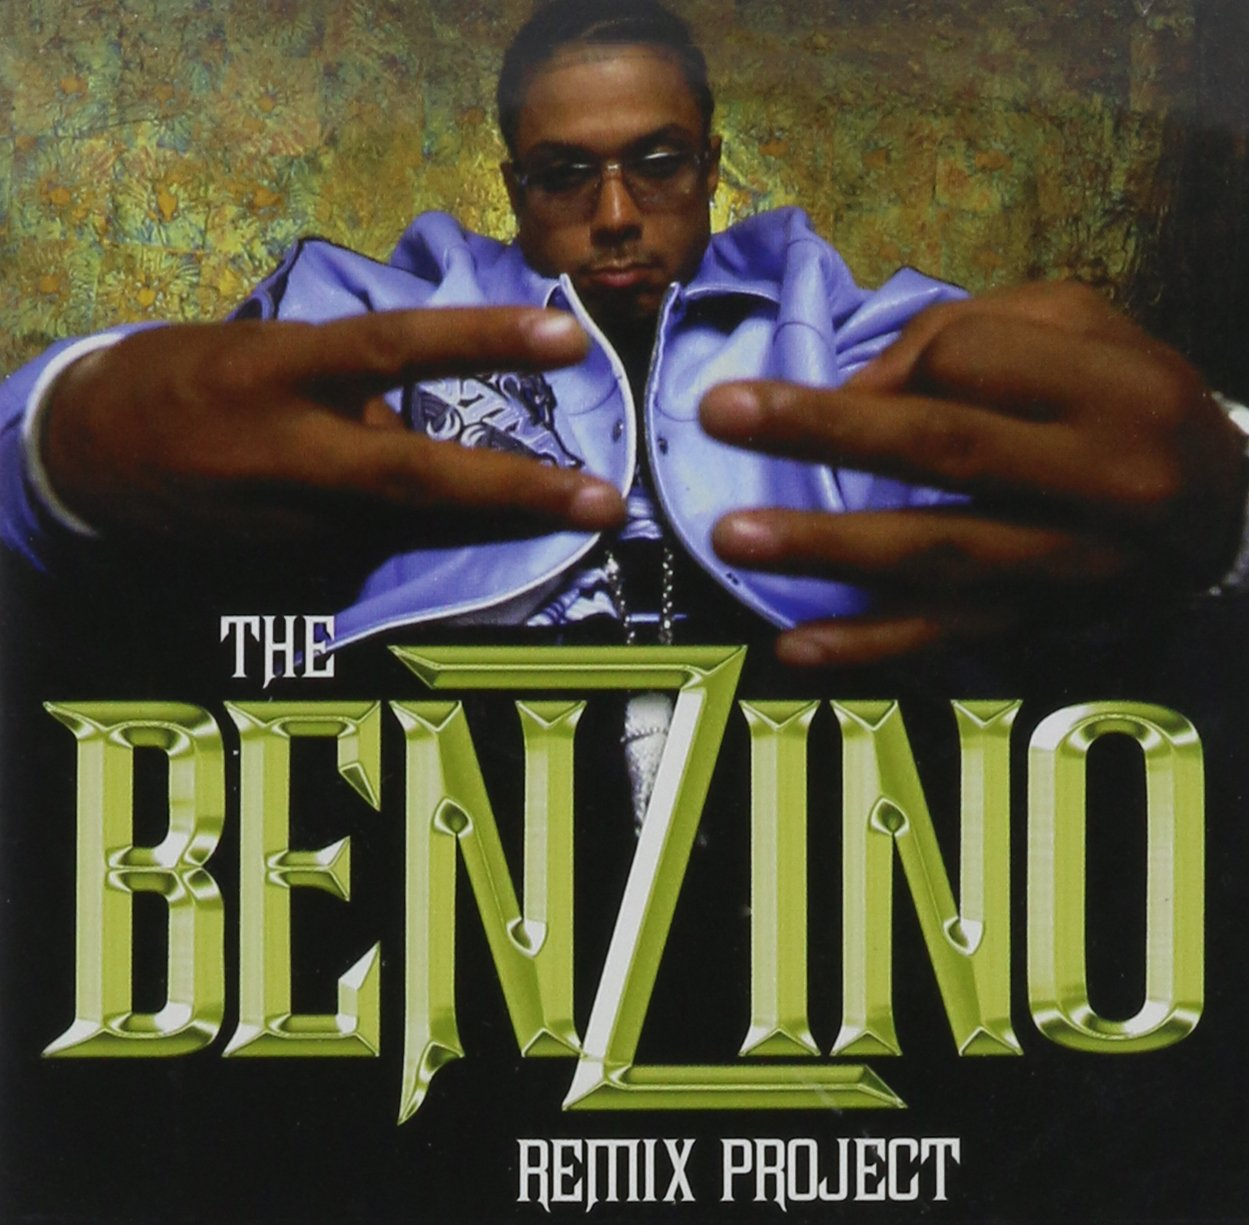 Buy Benzino Remix Project Online at Low Prices in India